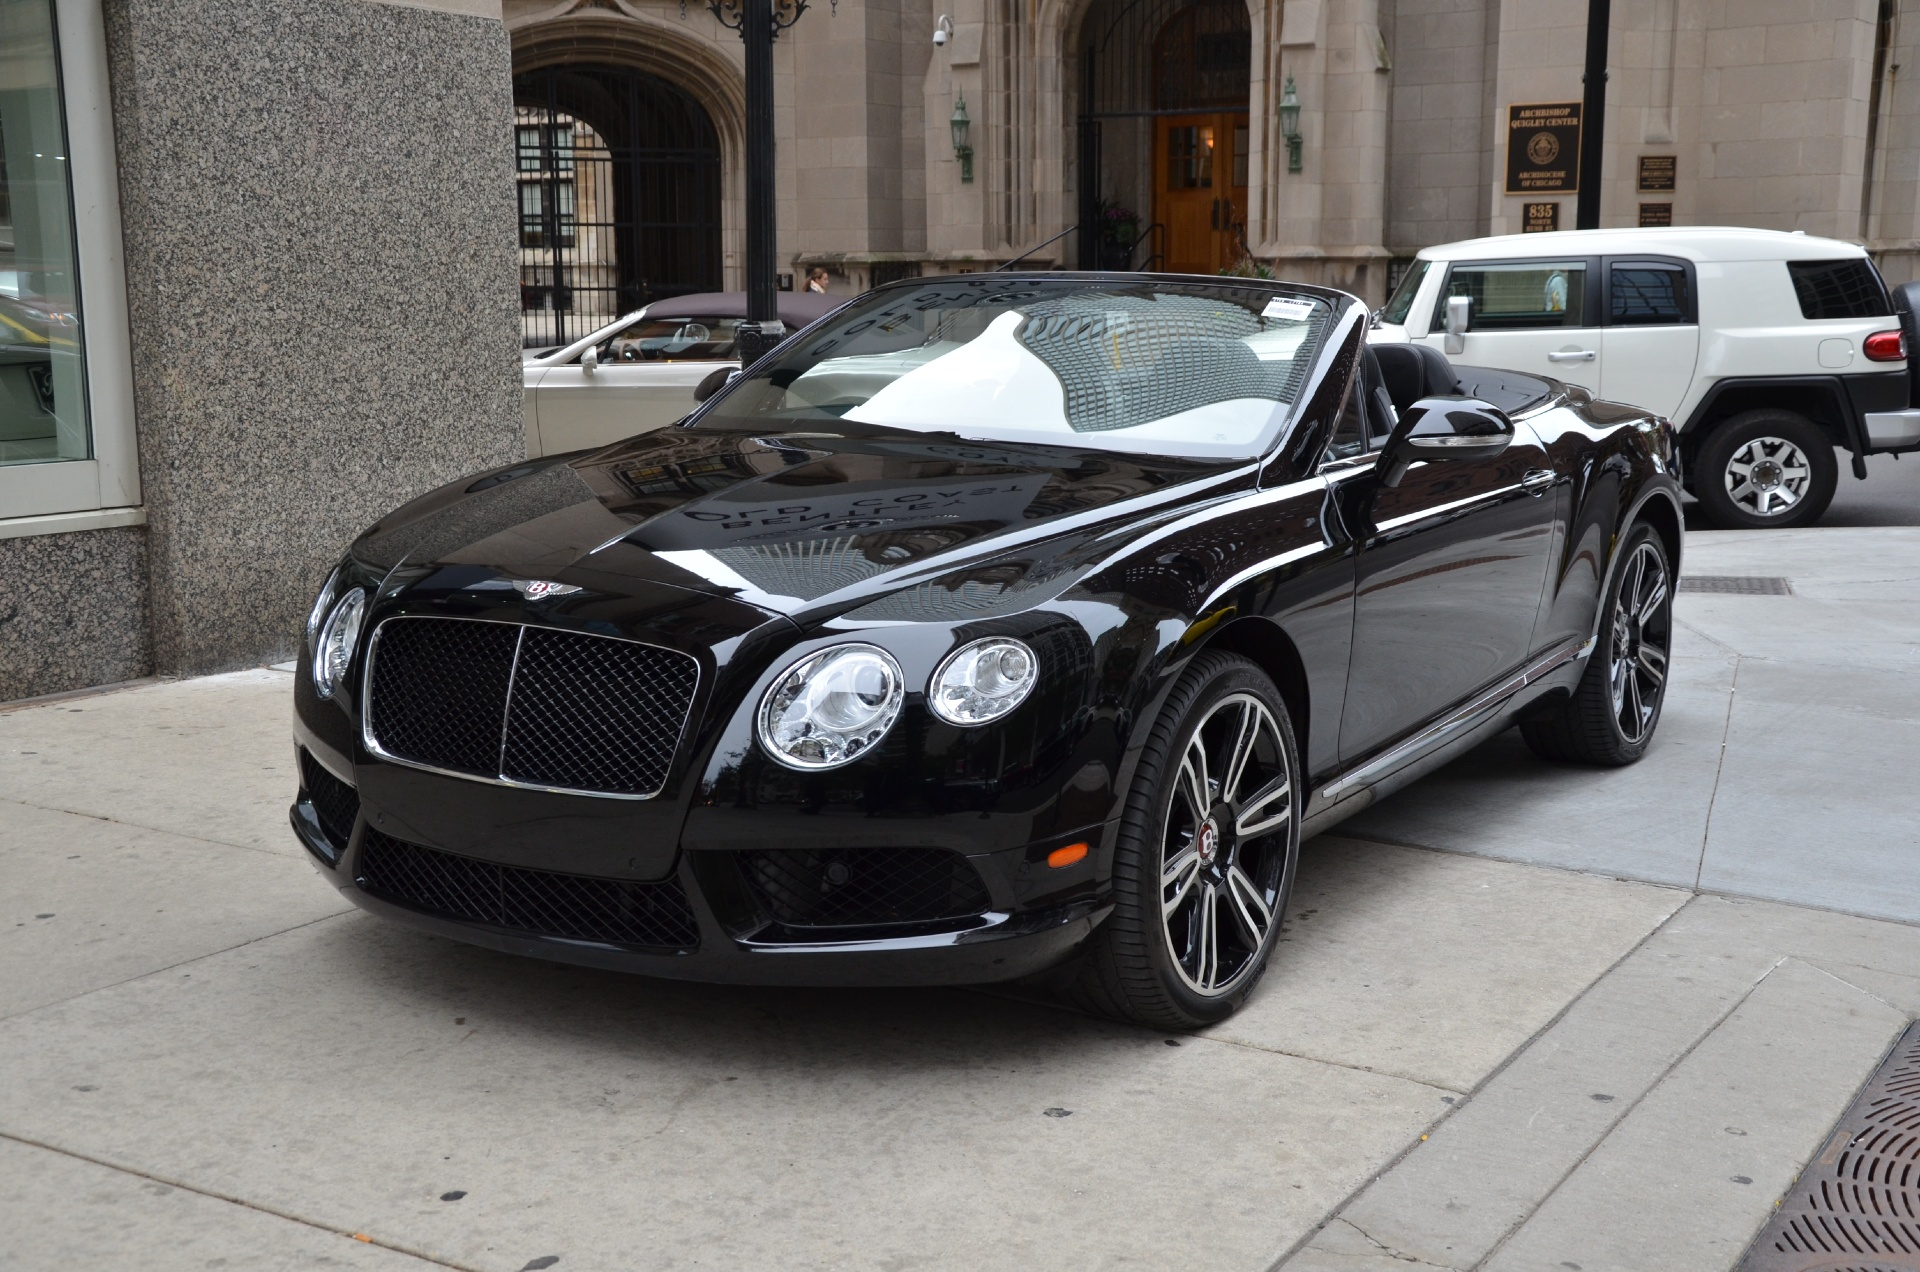 2014 bentley continental gtc v8 stock l218a for sale near chicago il il bentley dealer. Black Bedroom Furniture Sets. Home Design Ideas